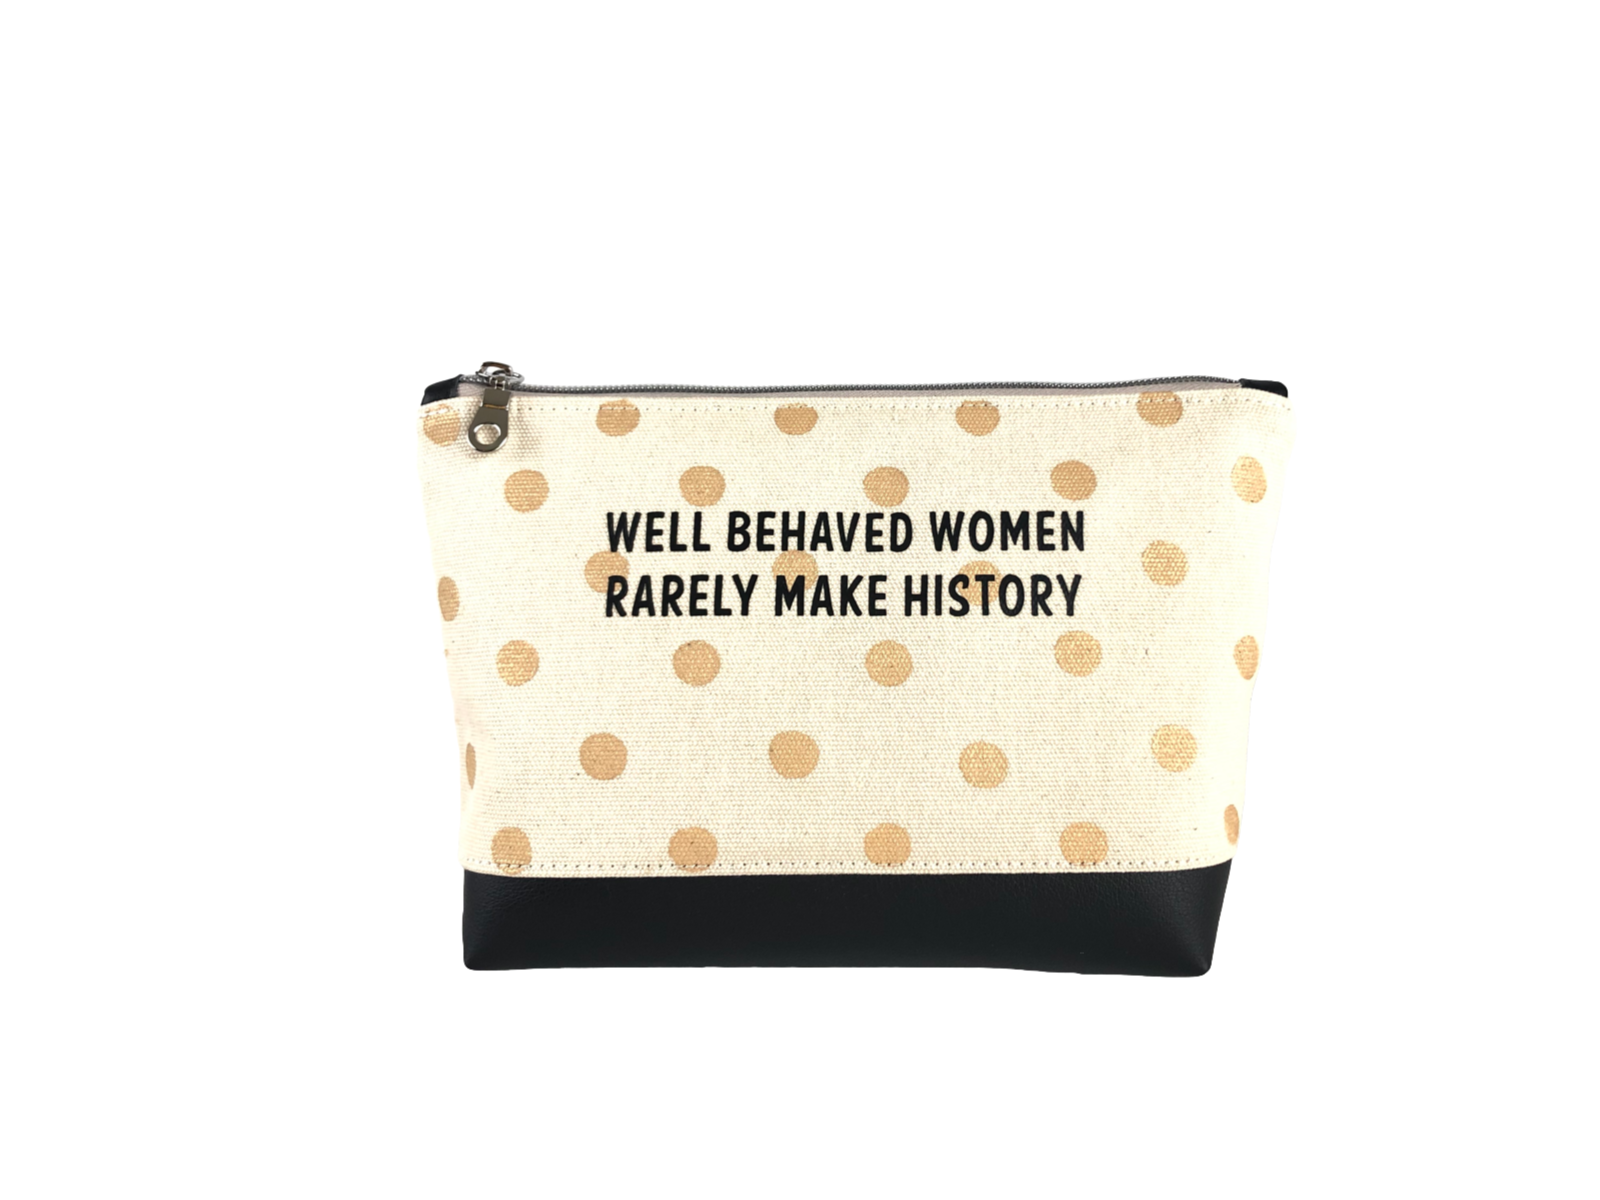 Inspirational Canvas Pouch - Well behaved women rarely make history